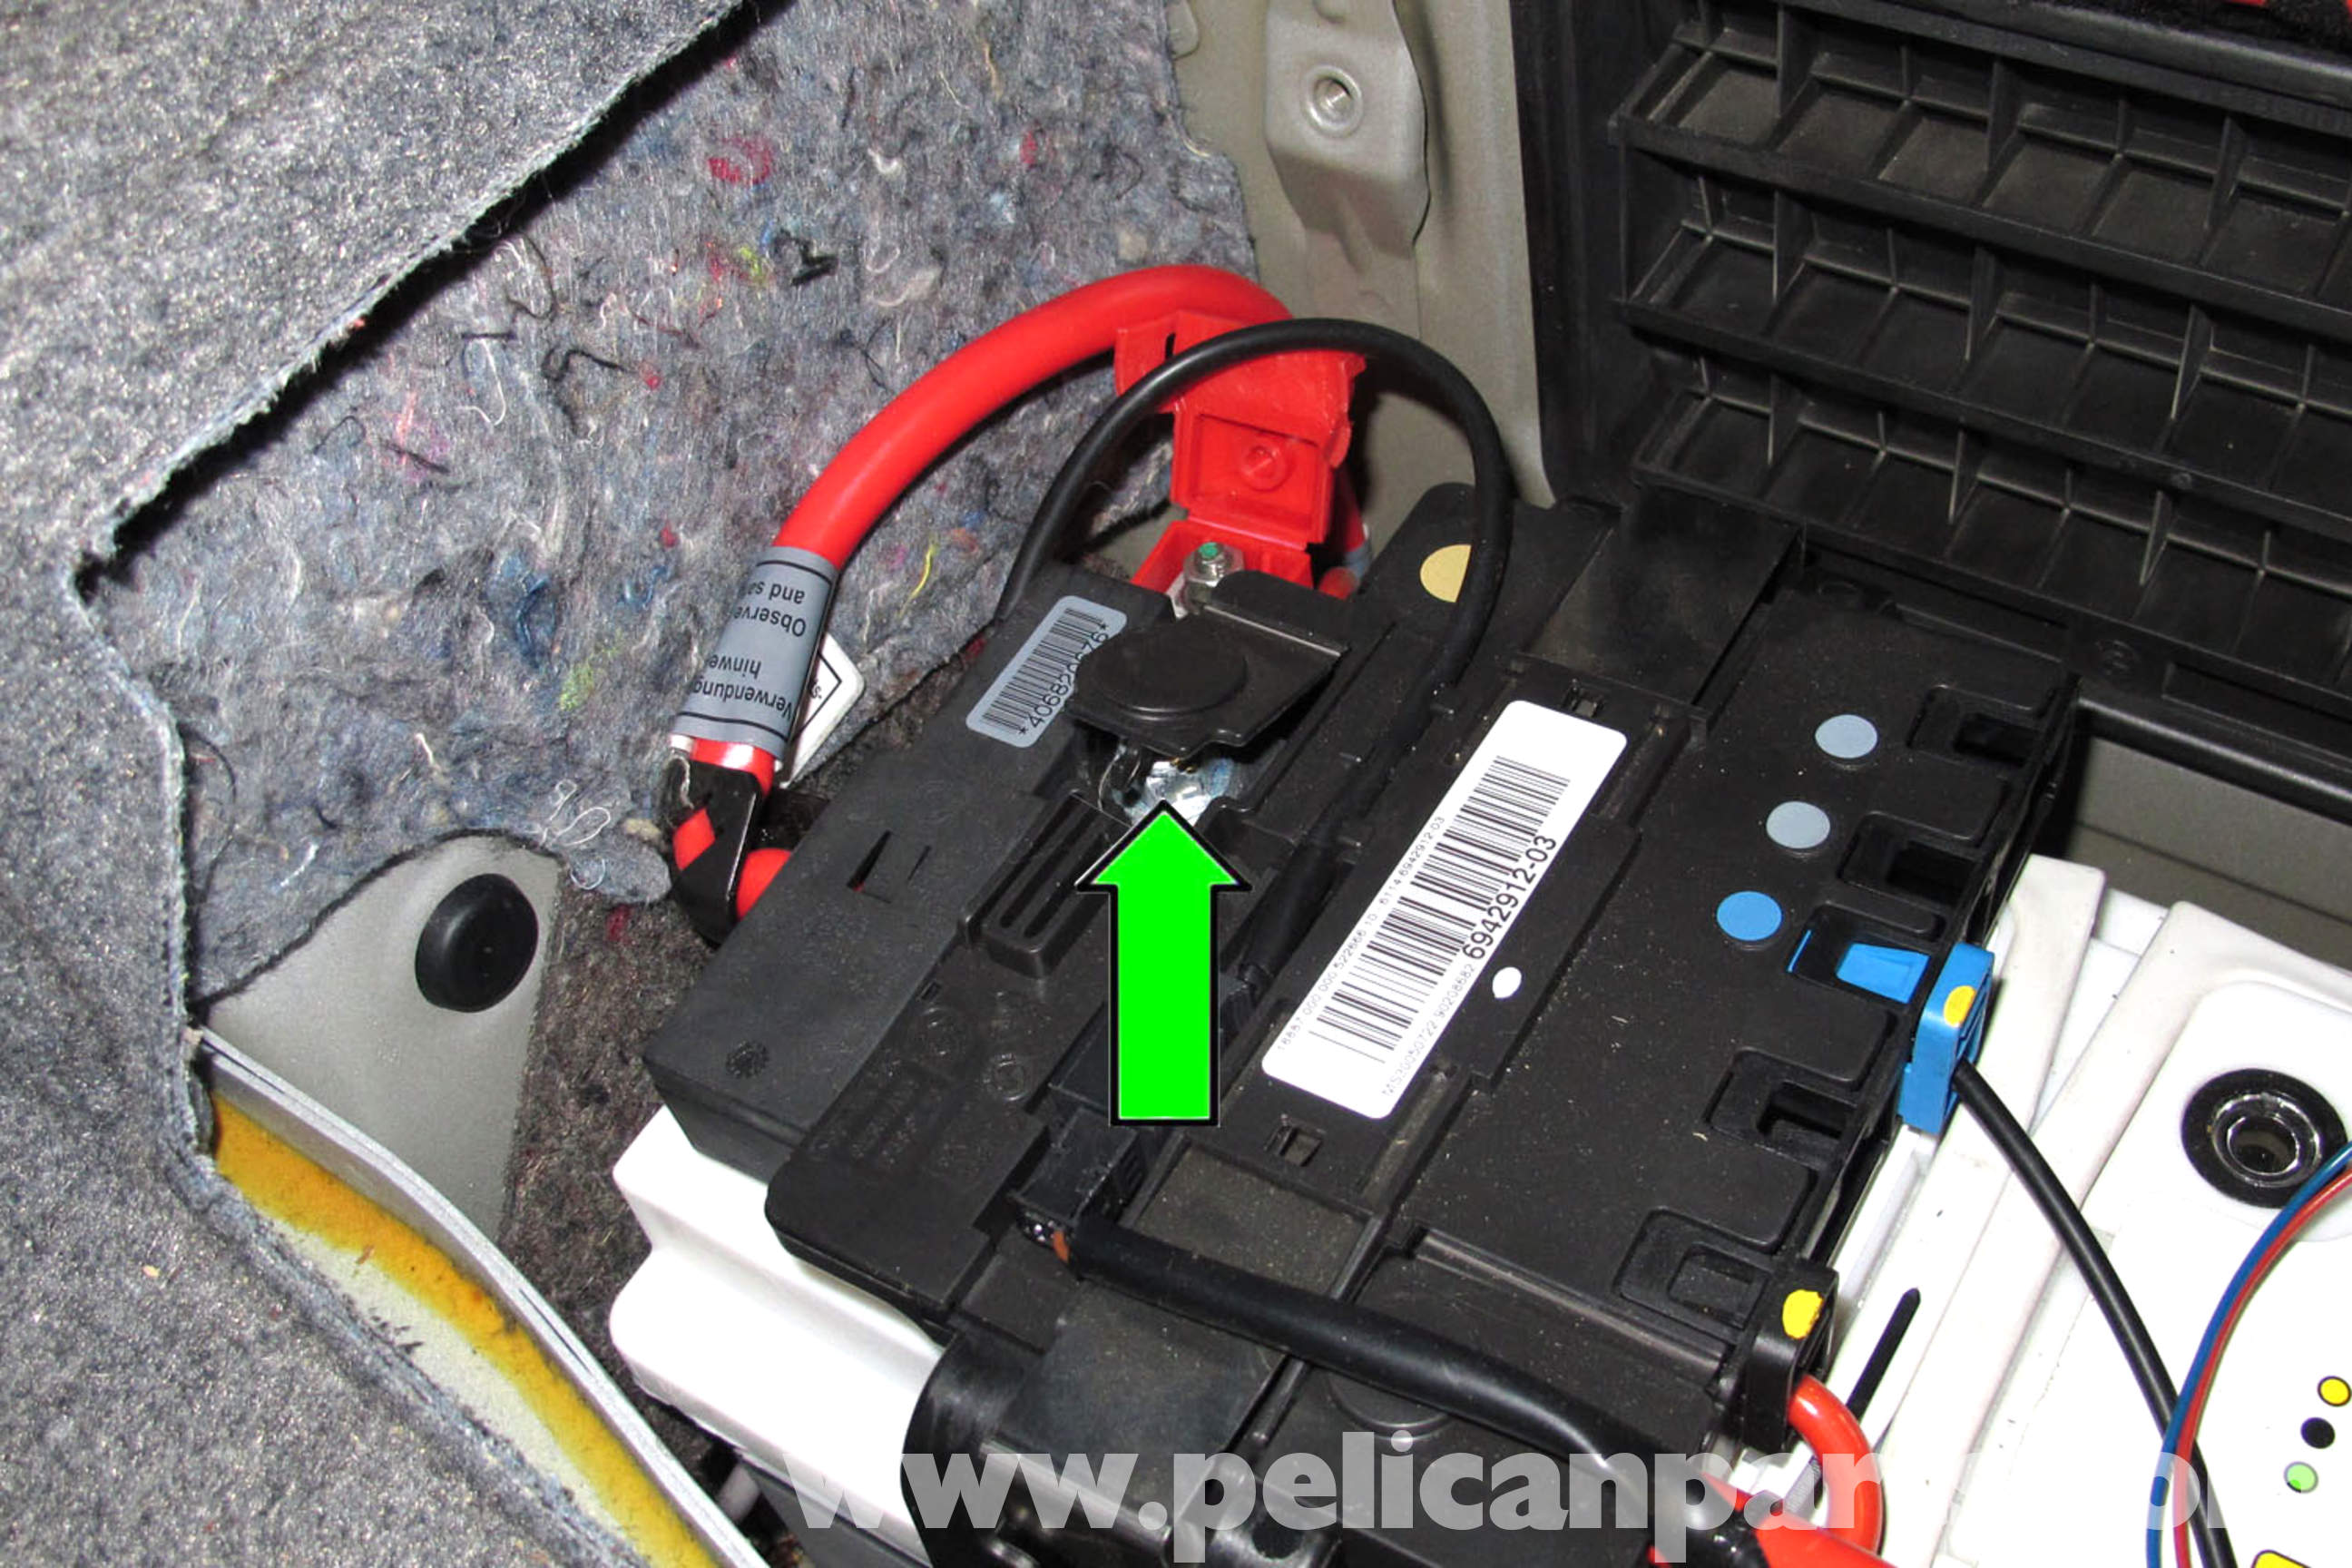 Pull Switch Fuse Box Data Schema Switches Bmw E90 Battery Replacement E91 E92 E93 Pelican Symbol Quiver